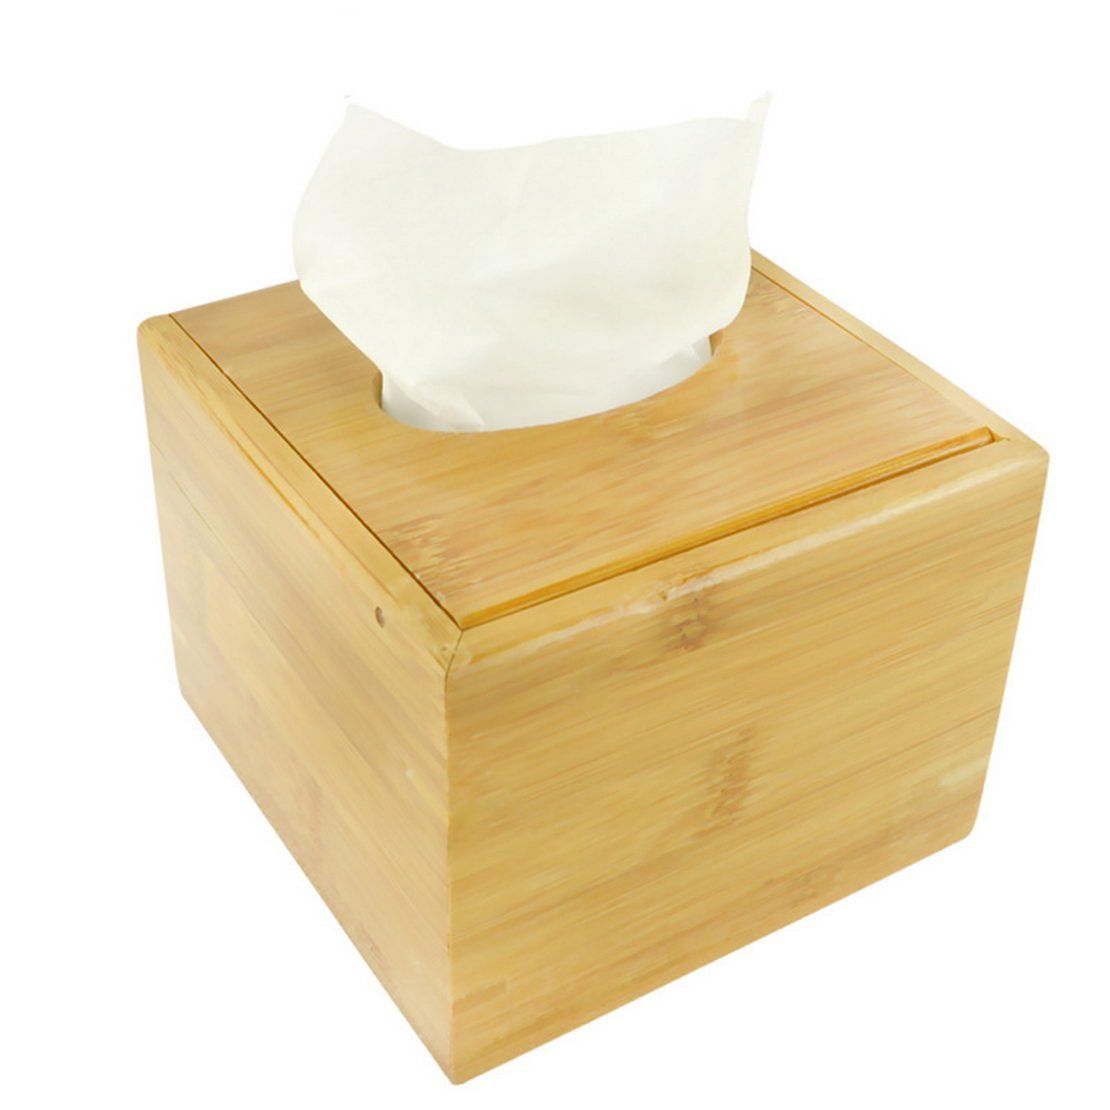 Dining table Bedroom Hotel tissue boxes paper pumping pumping cassette tray bamboo hotel living room at home pumping tissue box pumping tray, tissue boxes pumping tray table, bamboo tissue box pu